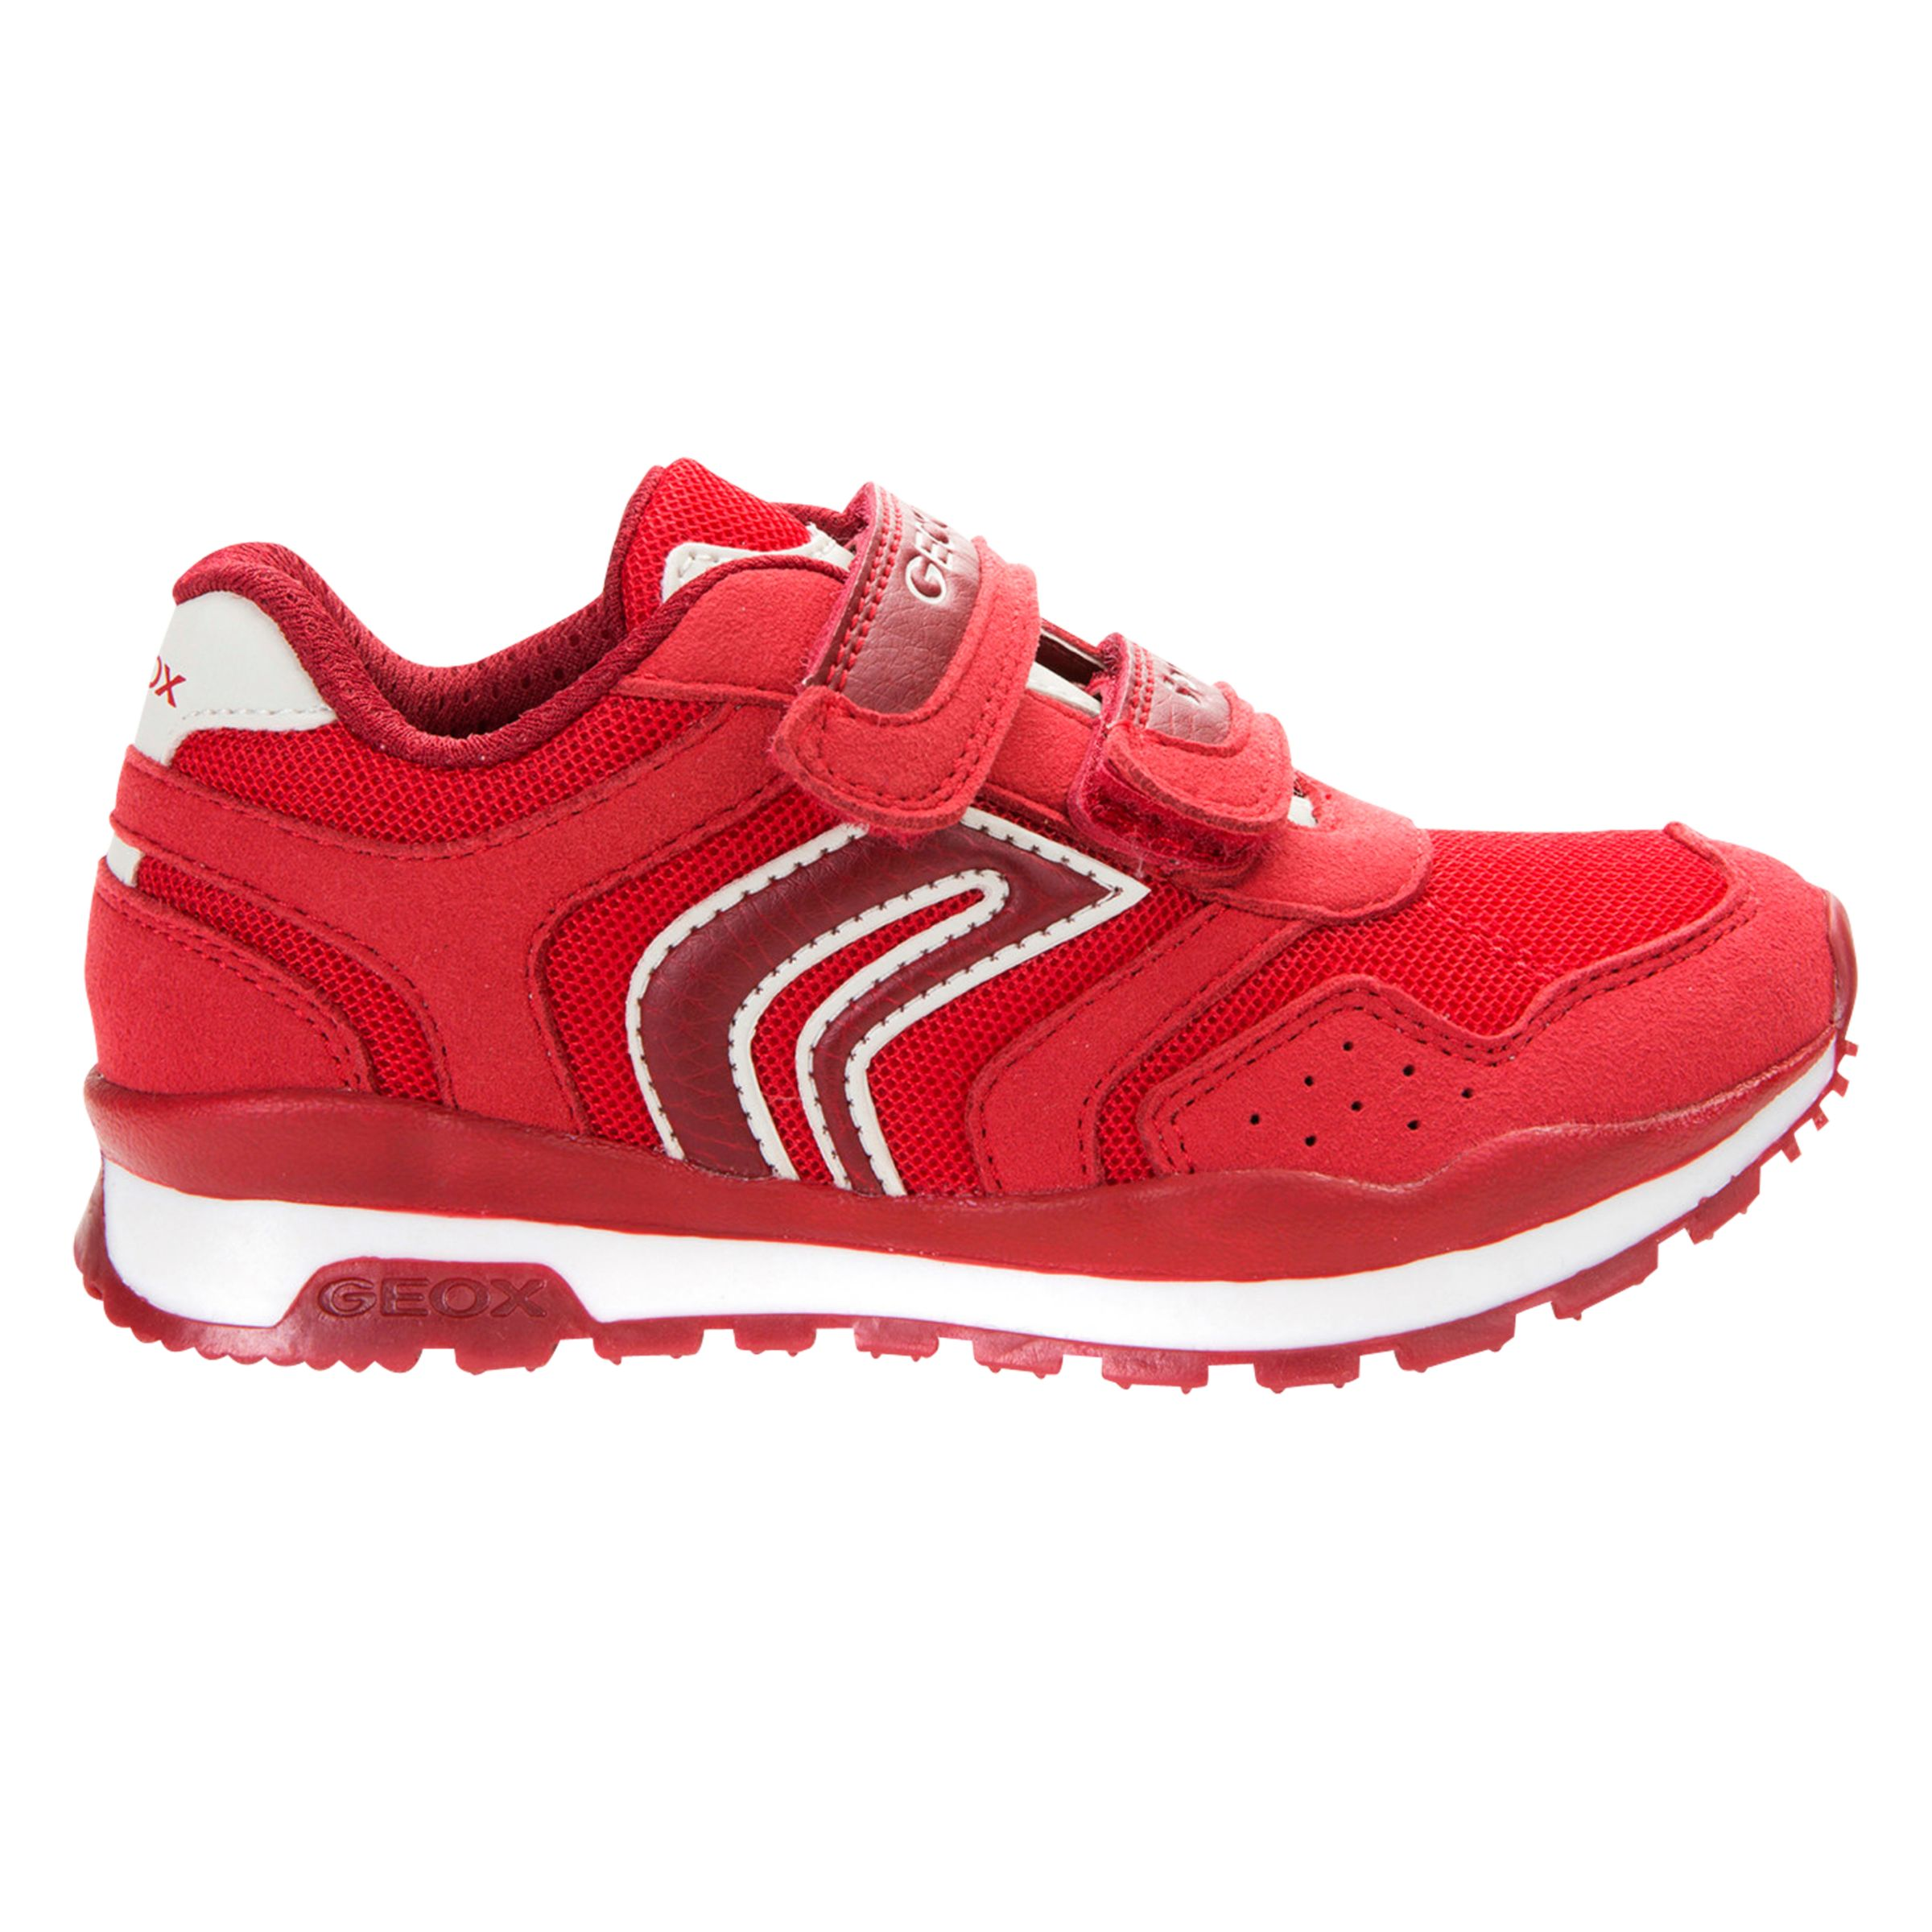 Geox Geox Children's Pavel Suede Riptape Trainers